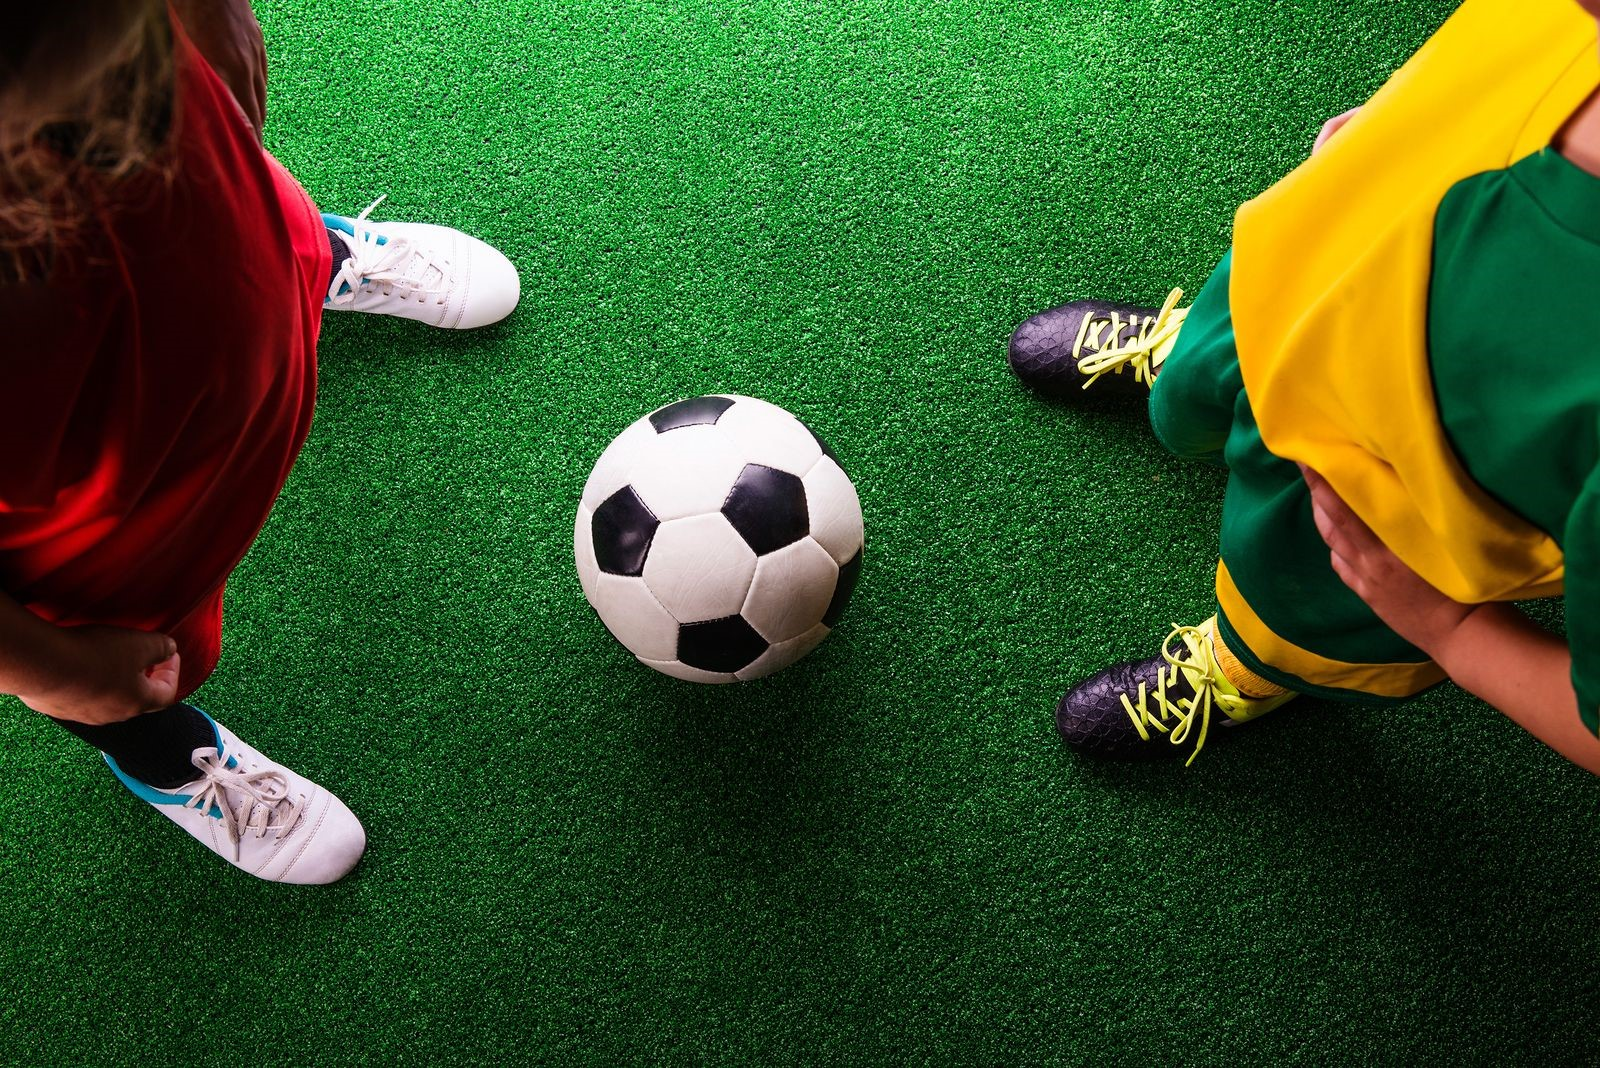 Artificial Turf for the Soccer Pitch? It's No Superficial Feature